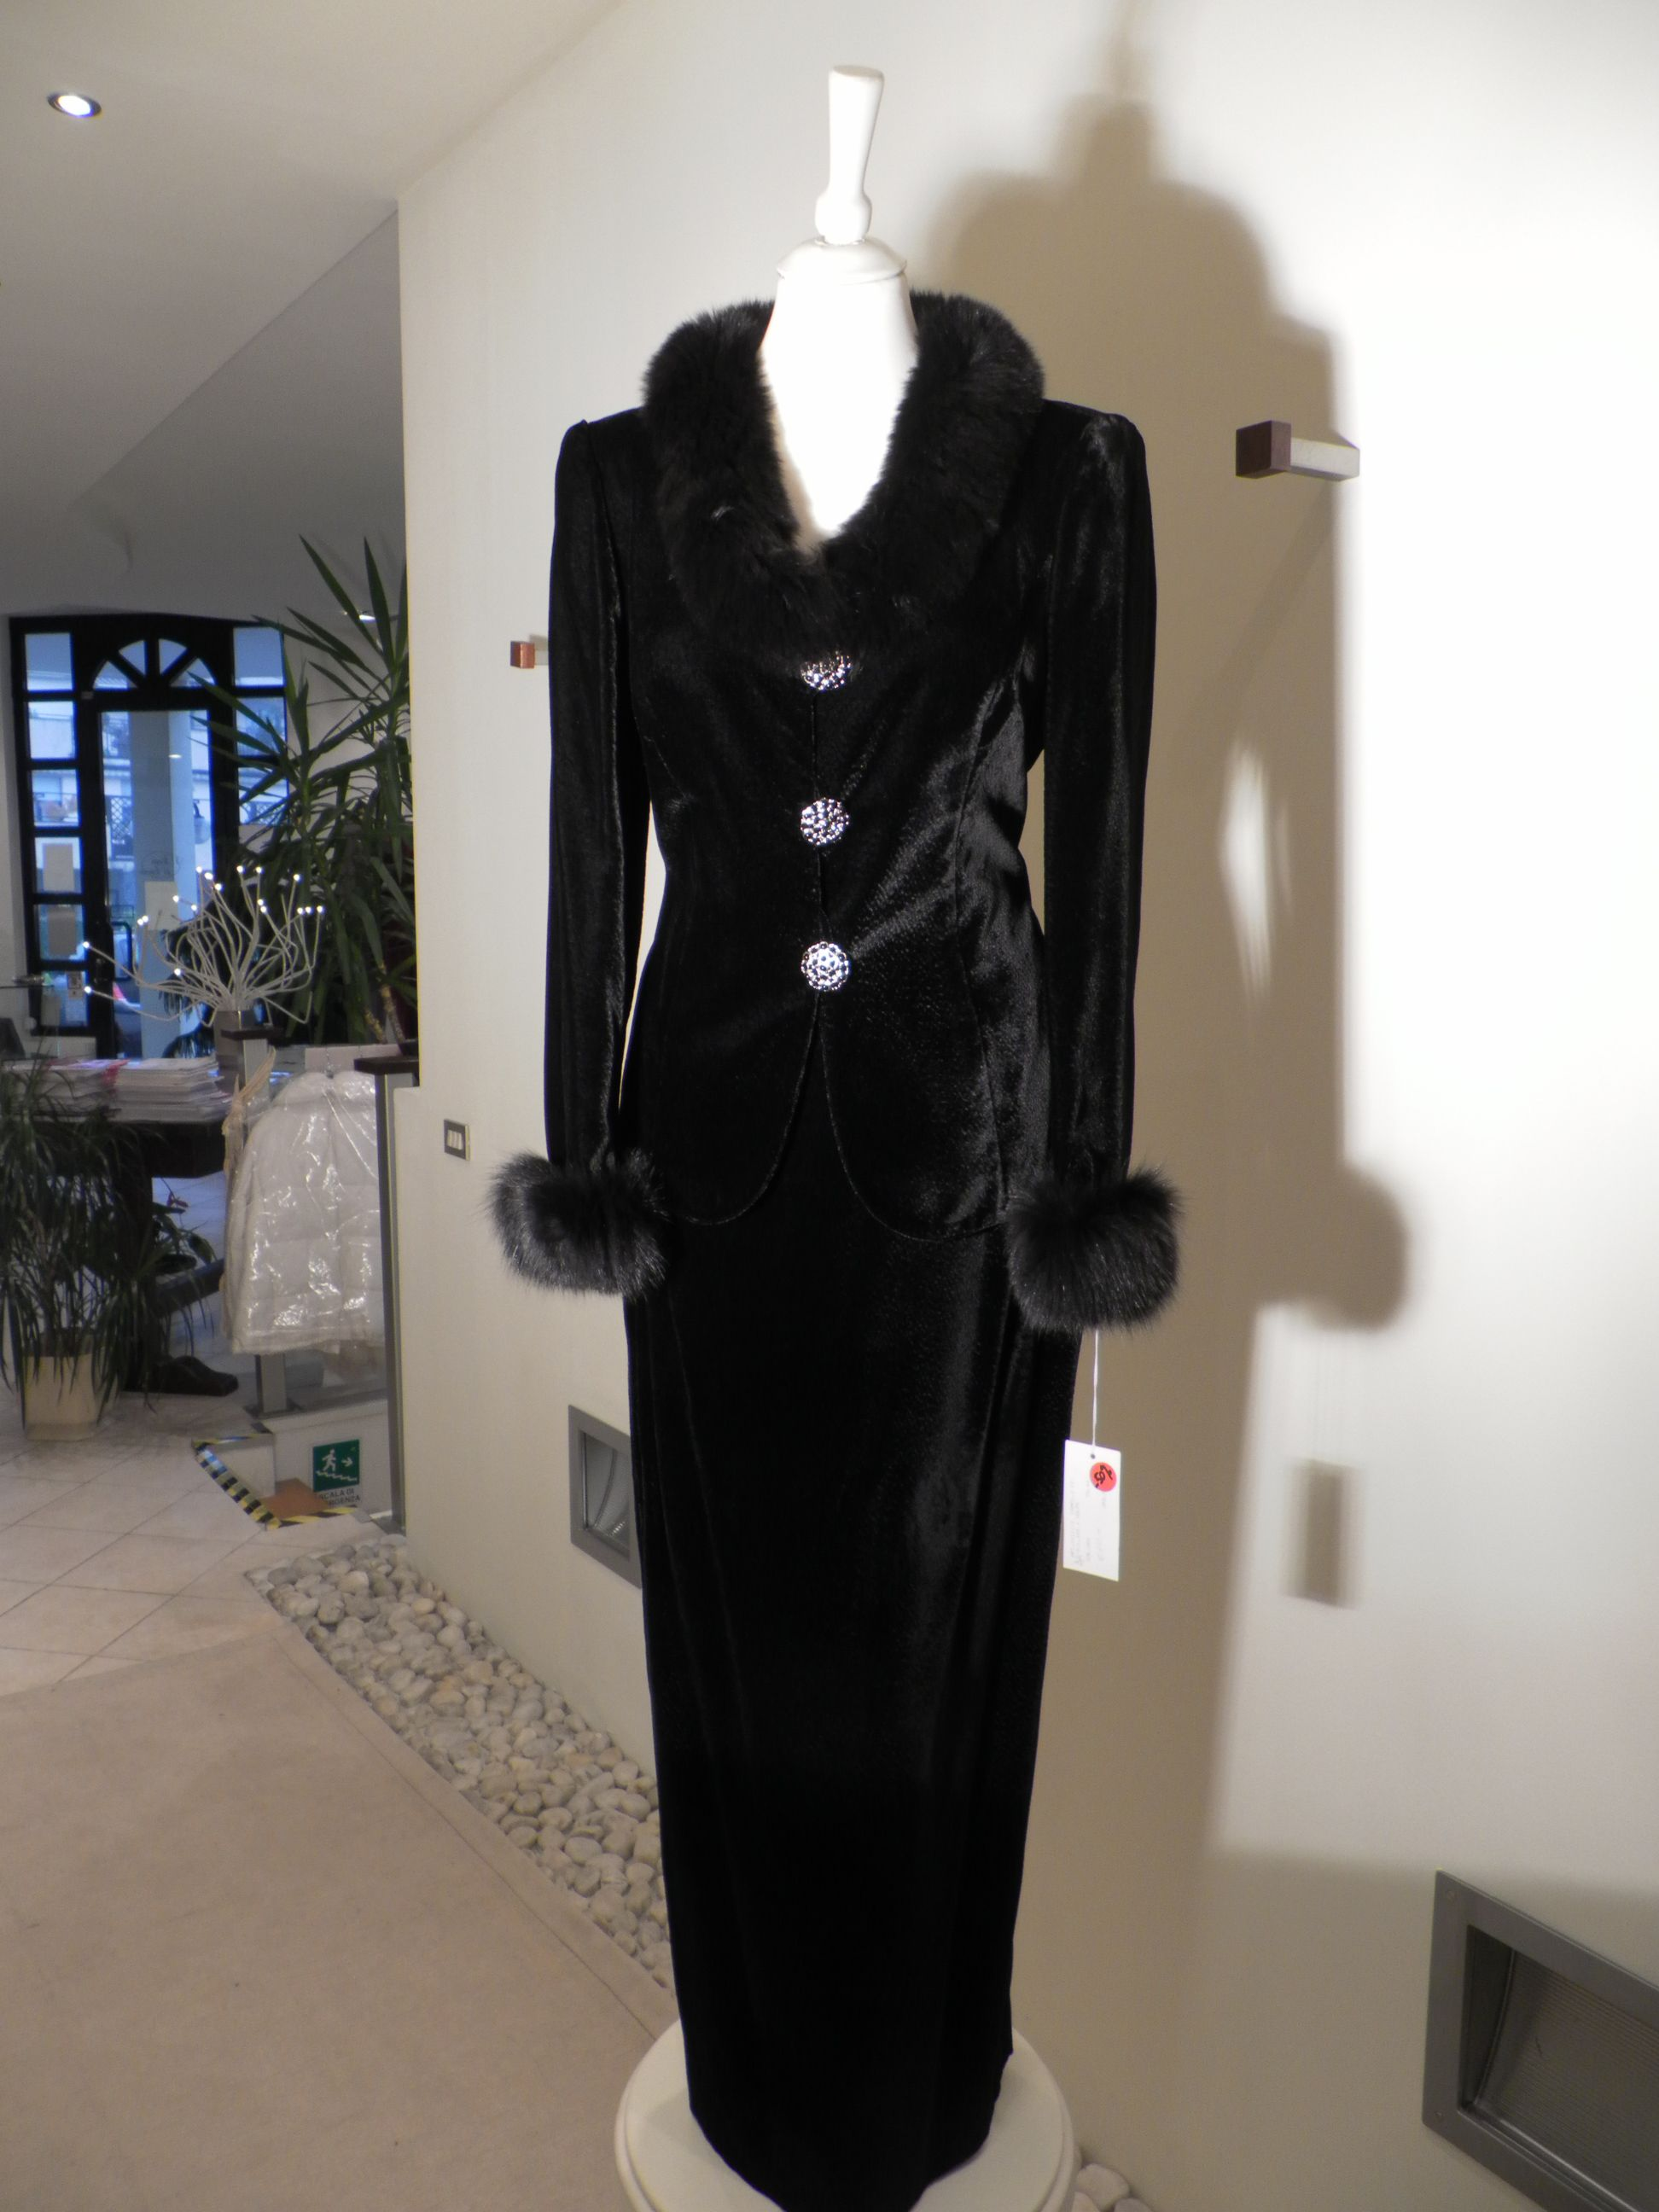 Paola baccini piece suit in black velvet jacket with fox collar